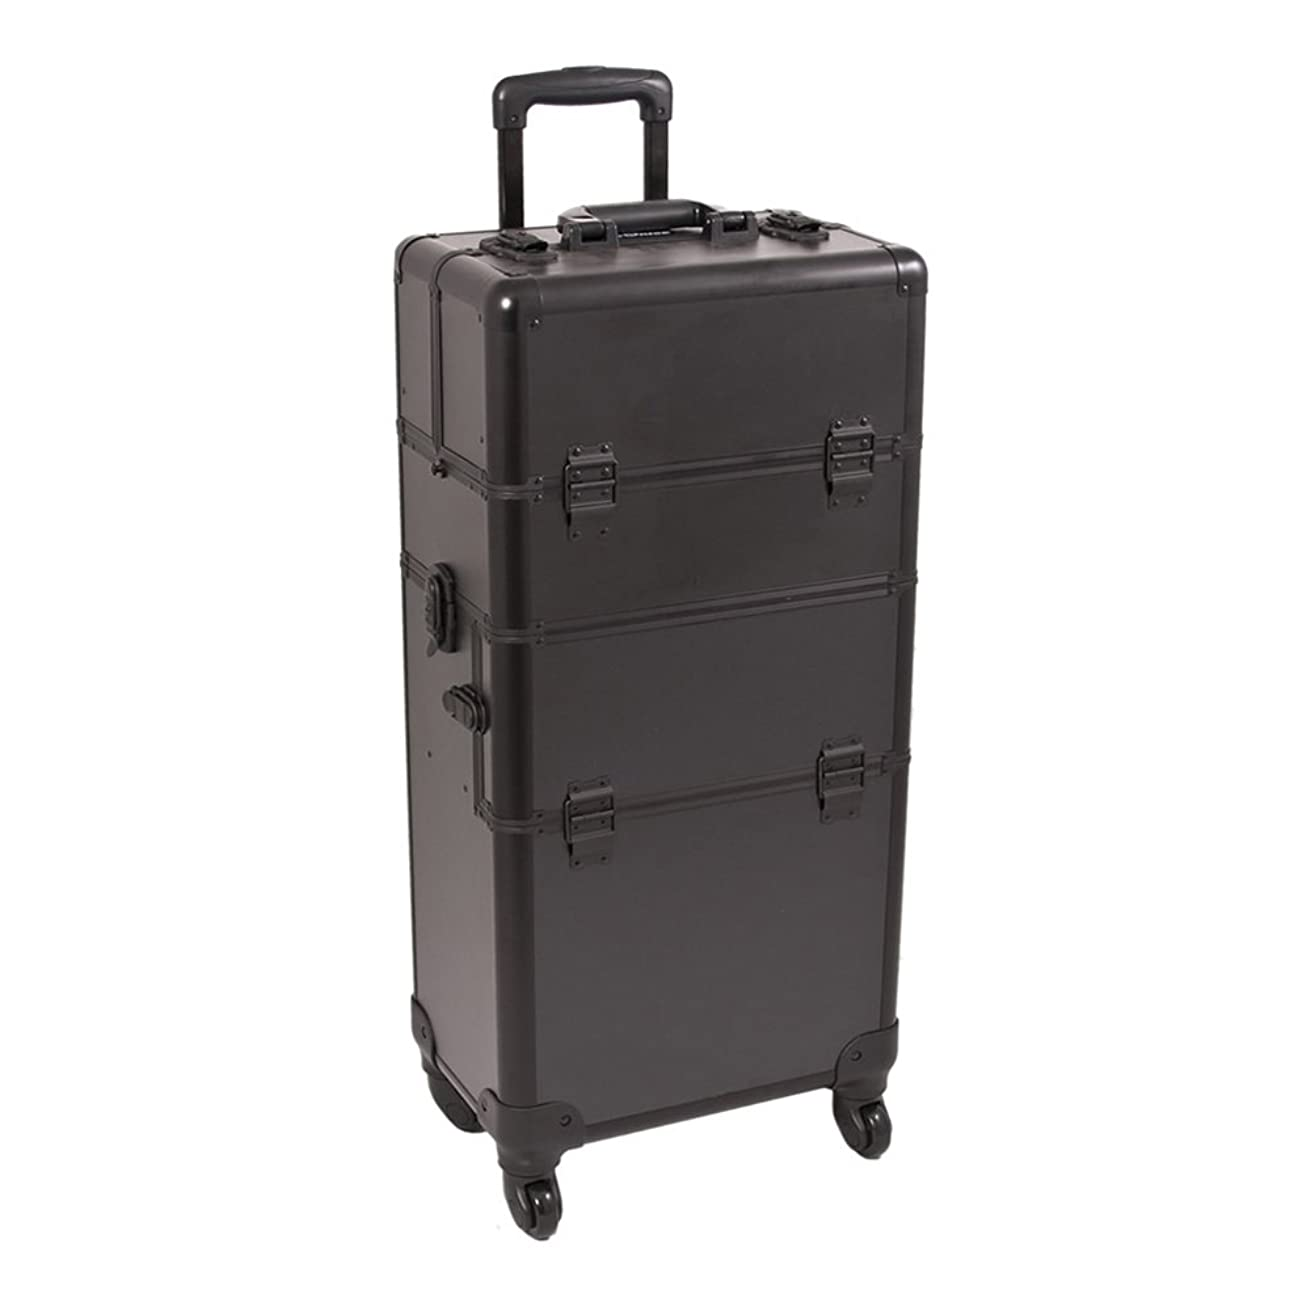 Craft Accents I3561 Smooth Trolley Craft/Quilting Storage Case, Black